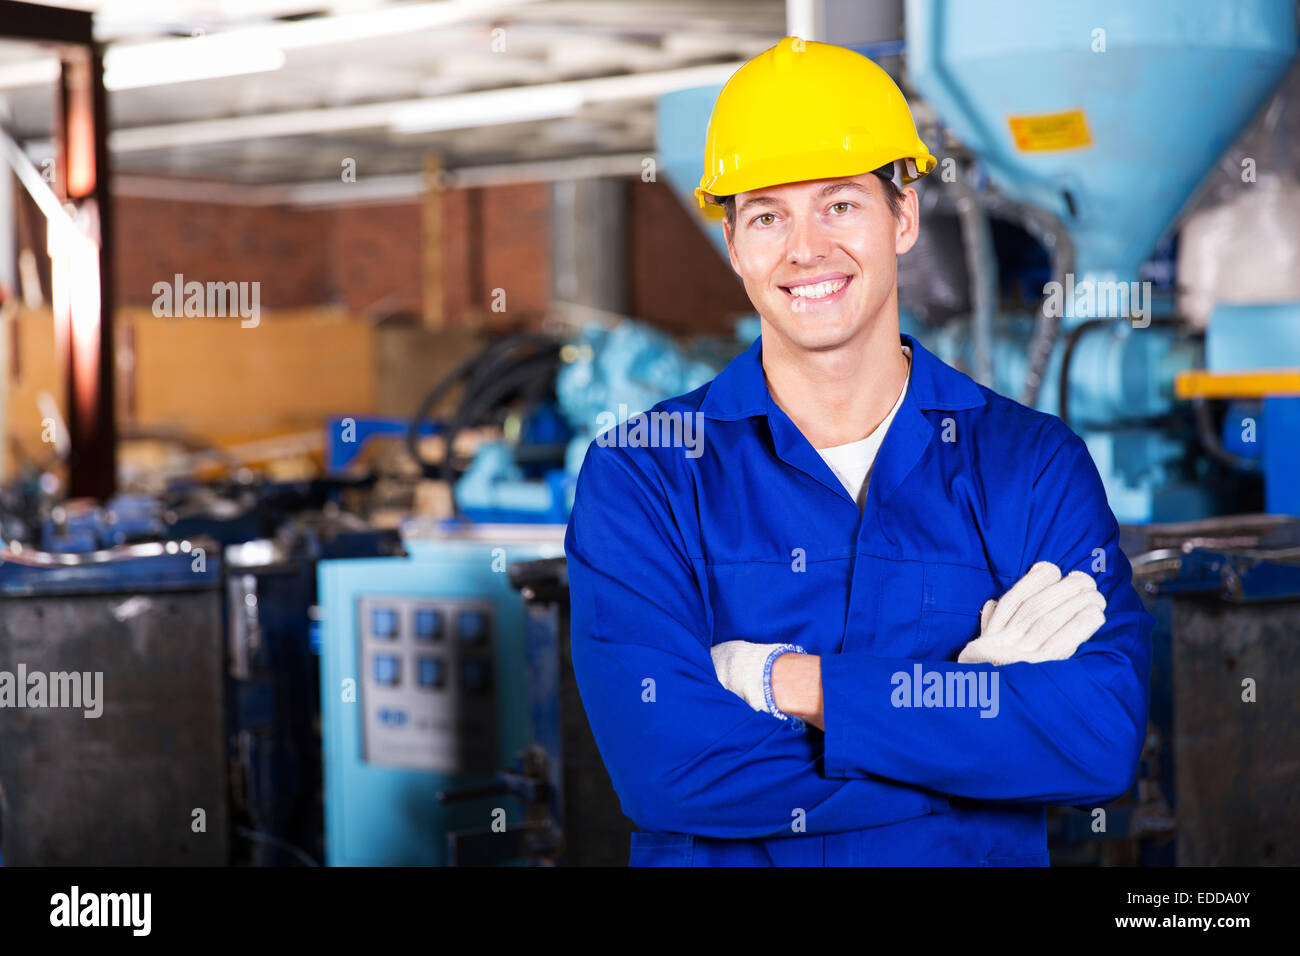 good looking blue collar worker in factory - Stock Image